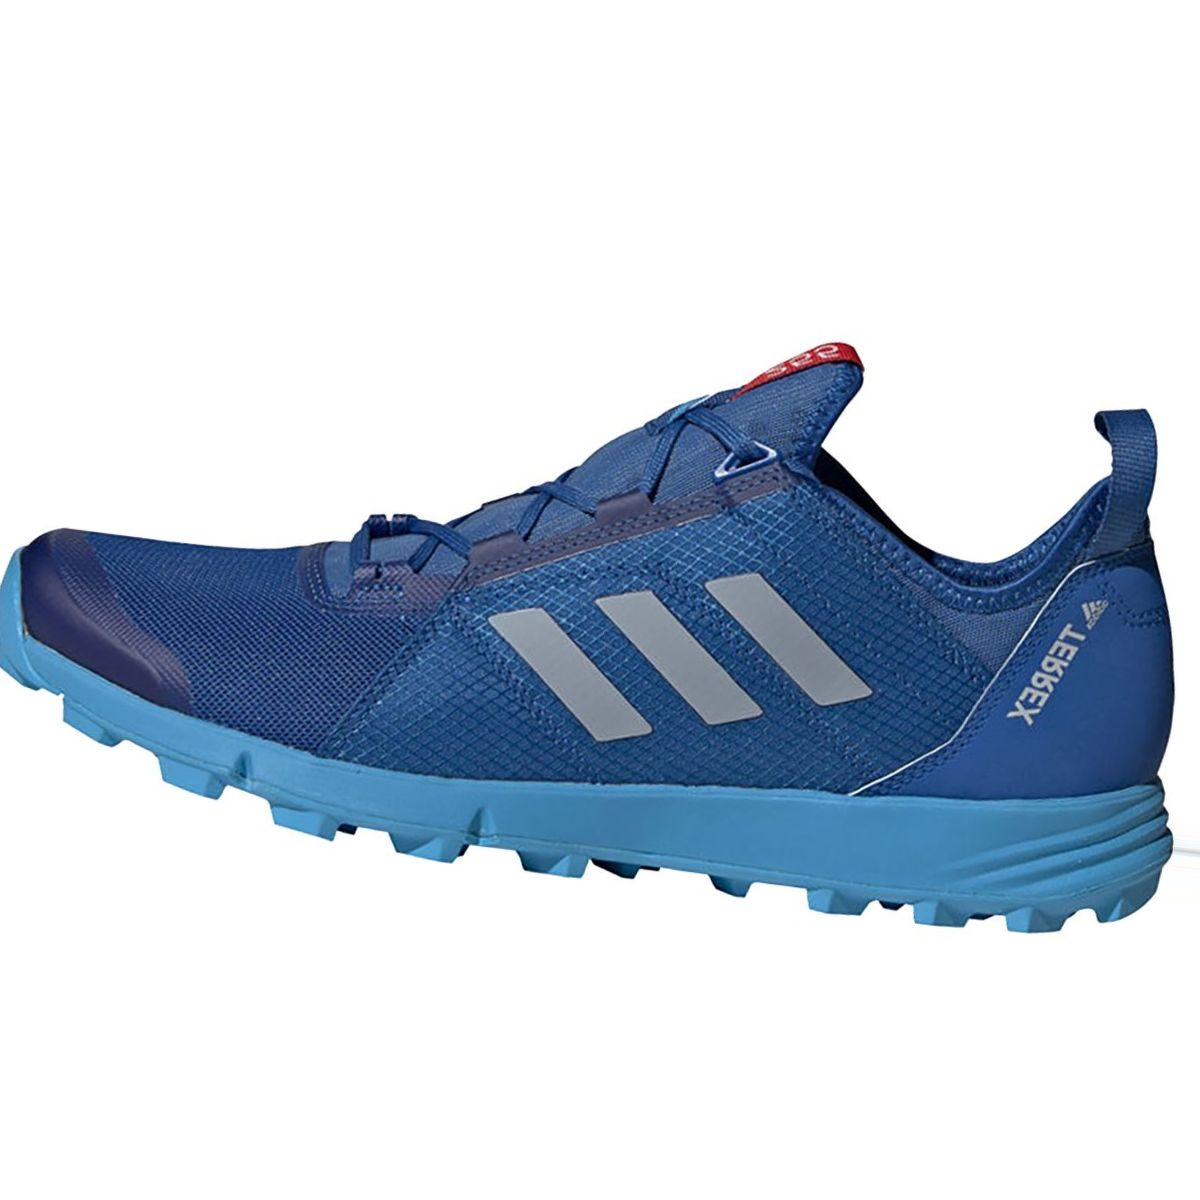 Adidas Outdoor Terrex Agravic Speed Trail Running Shoe - Men's